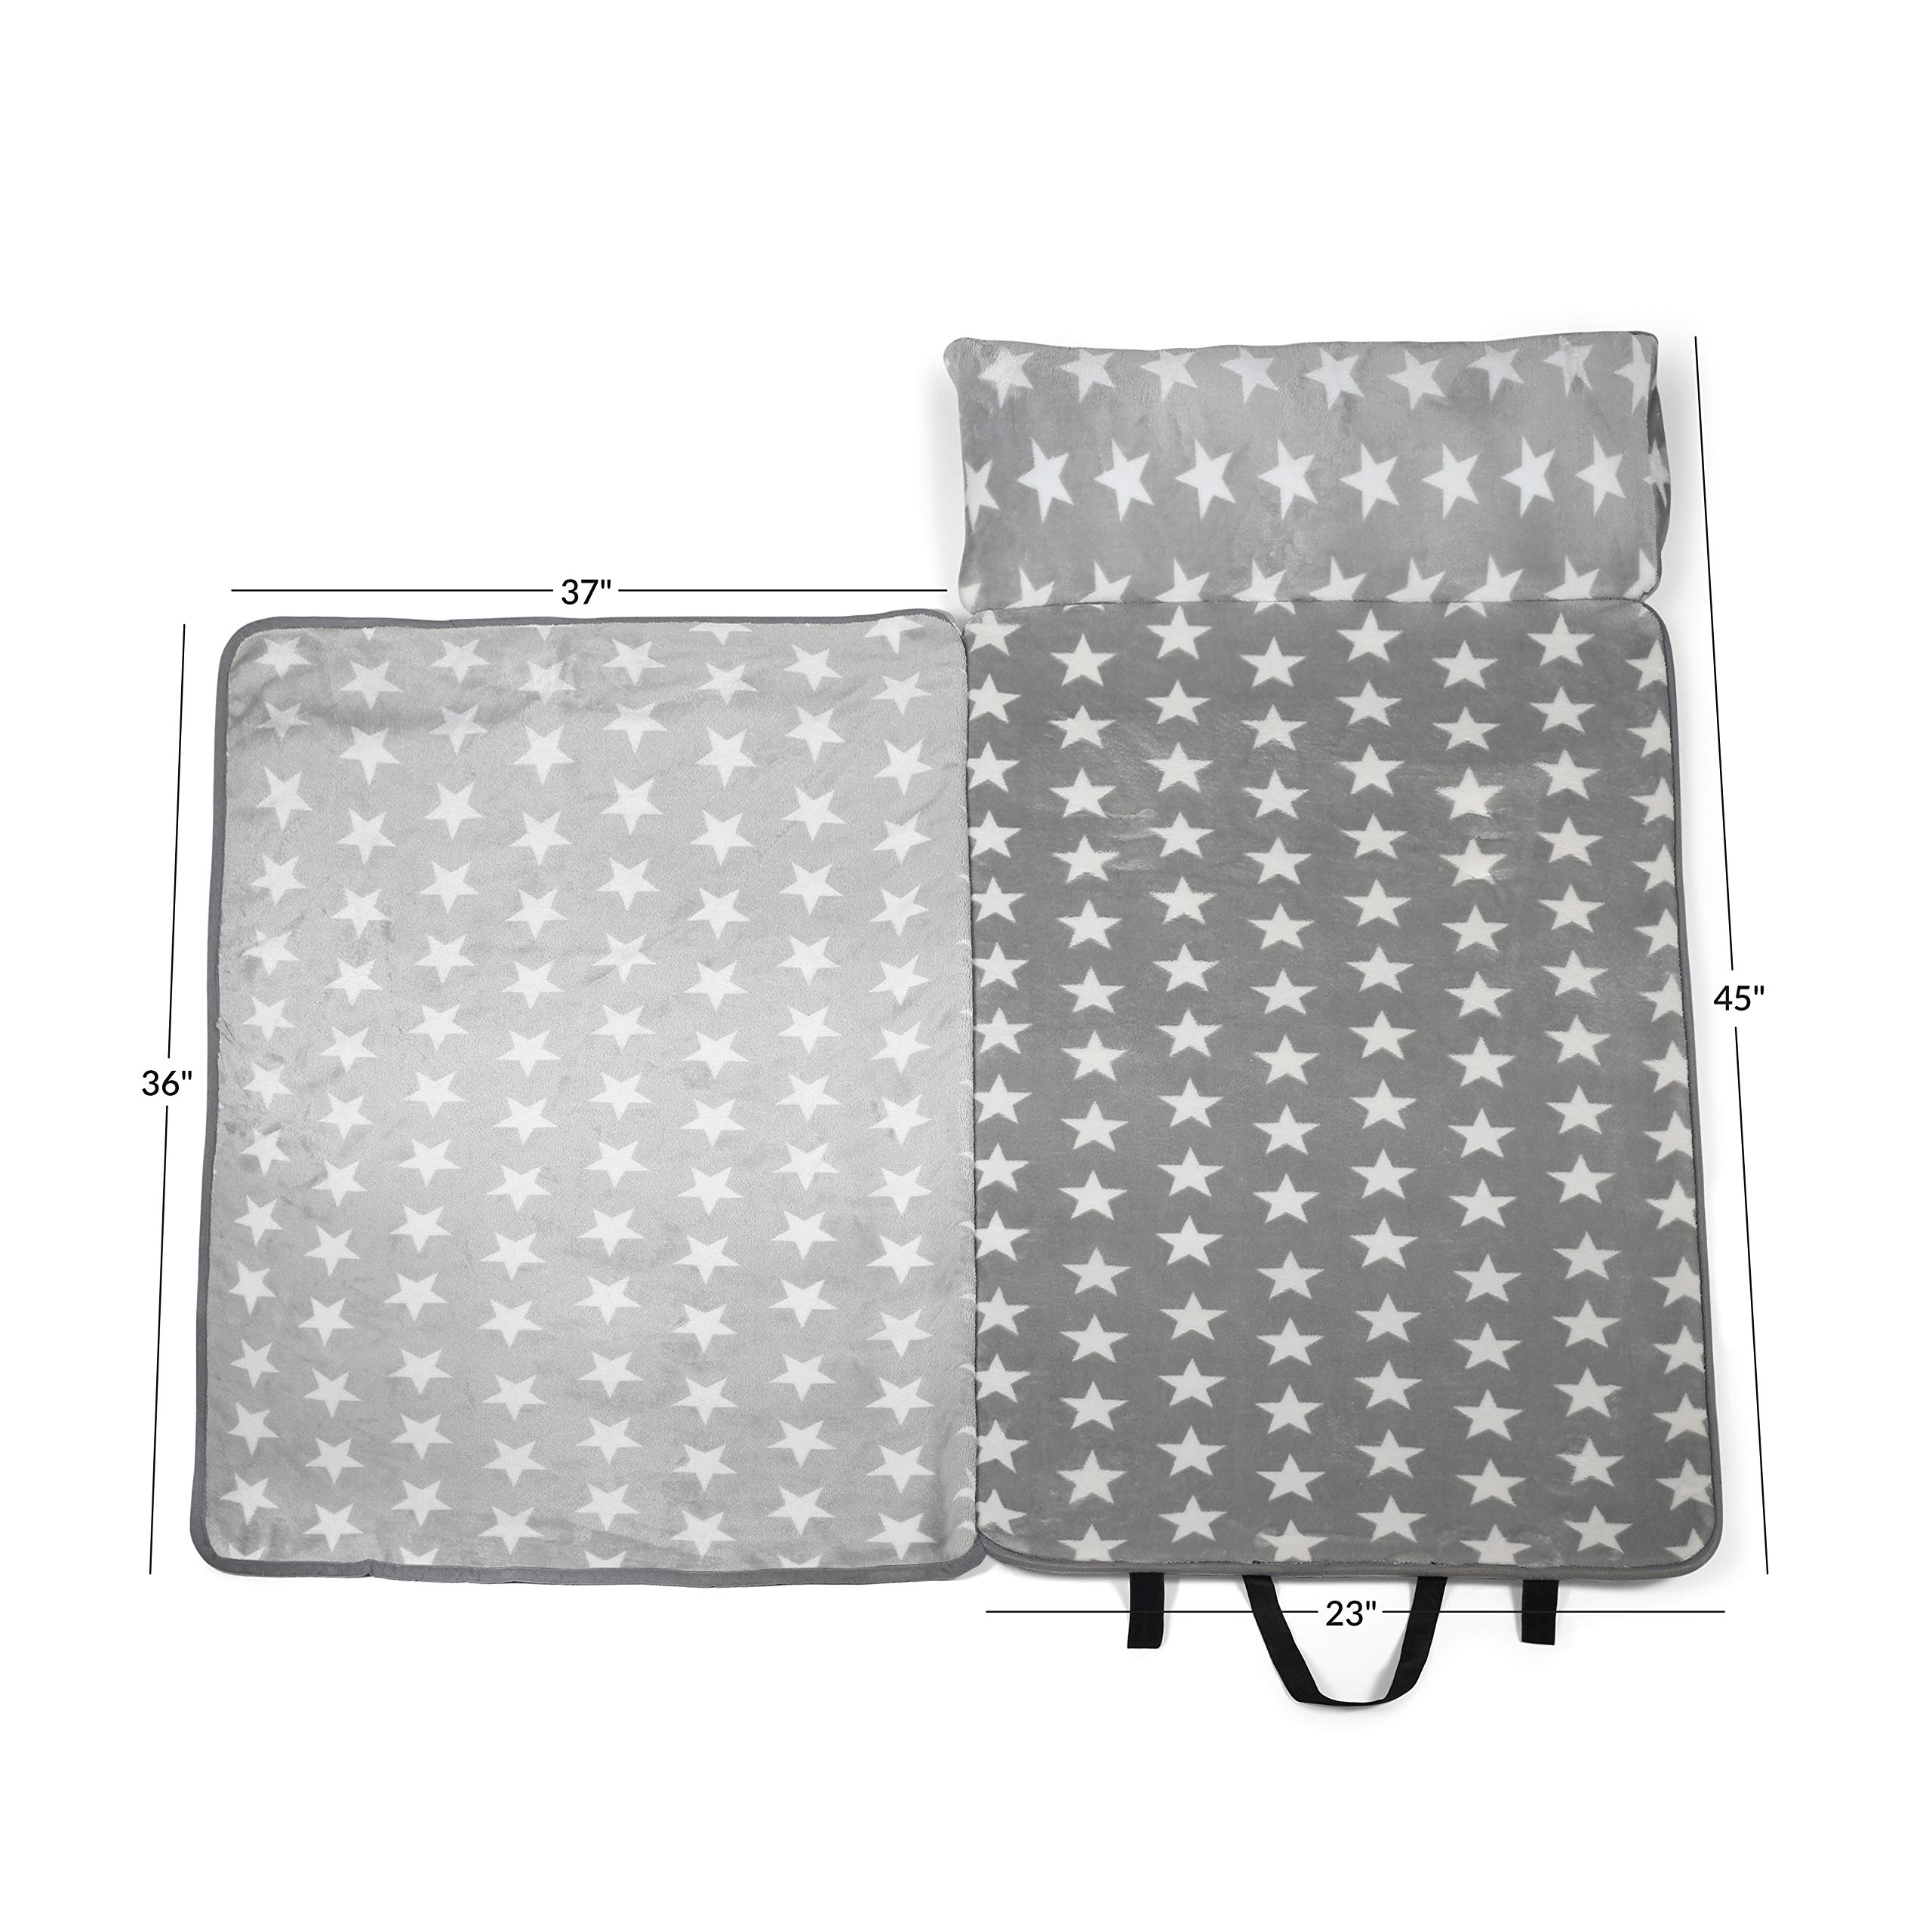 Milliard -Memory Foam- Nap Mat Roll Stars with Fuzzy Blanket and Removable Pillow, Machine Washing for Toddler Daycare Preschool Kindergarten and Sleepovers by Milliard (Image #4)